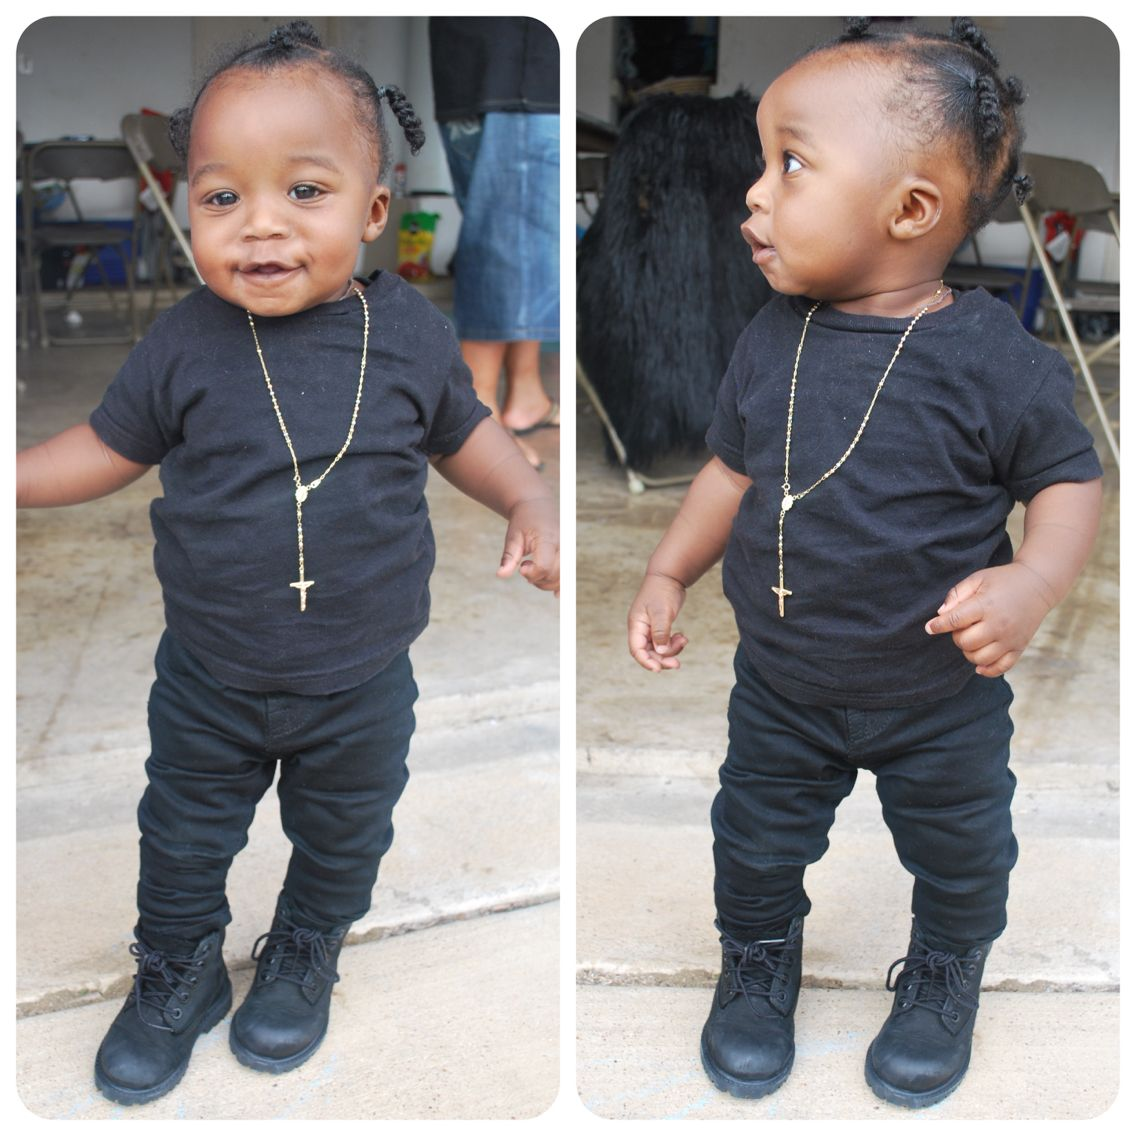 eeba6a43a All black Blackout Baby swag Gold chain Piece and chain Rhouri ...